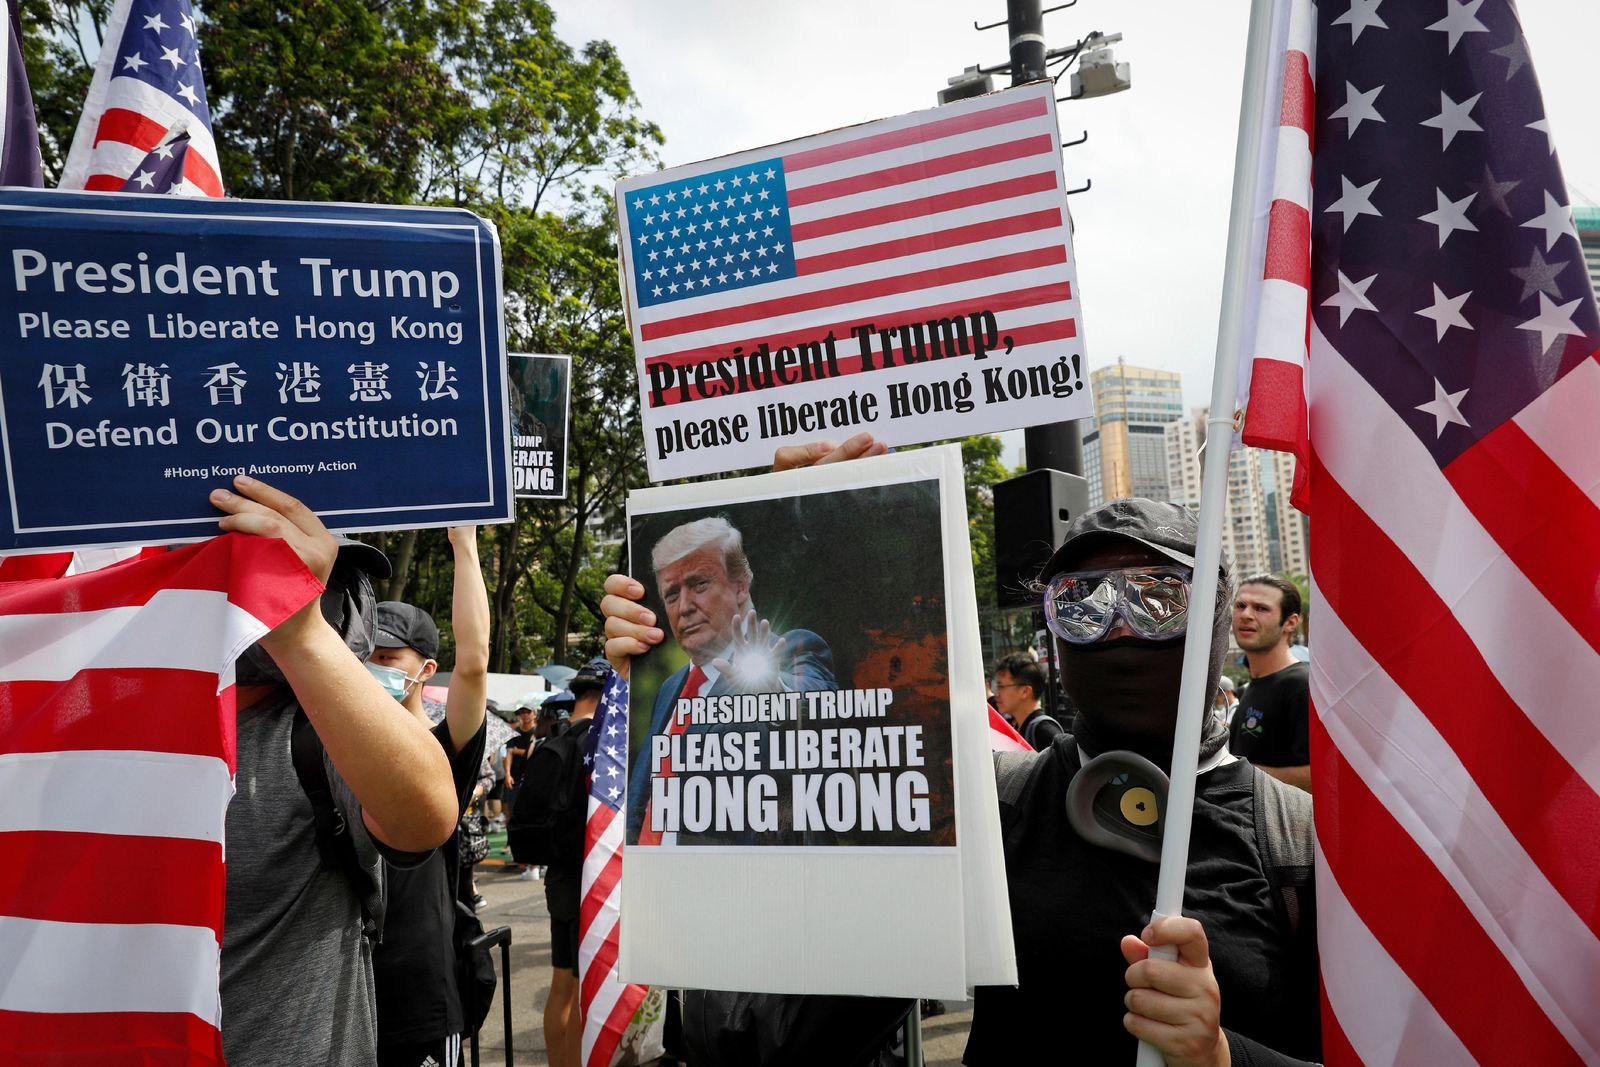 Protesters hold a placard featuring U.S. President Donald Trump and U.S. flags as they take part in a march at Victoria Park in Hong Kong, Sunday, July 21, 2019. Thousands of Hong Kong protesters marched from a public park to call for an independent investigation into police tactics.(AP Photo/Vincent Yu)